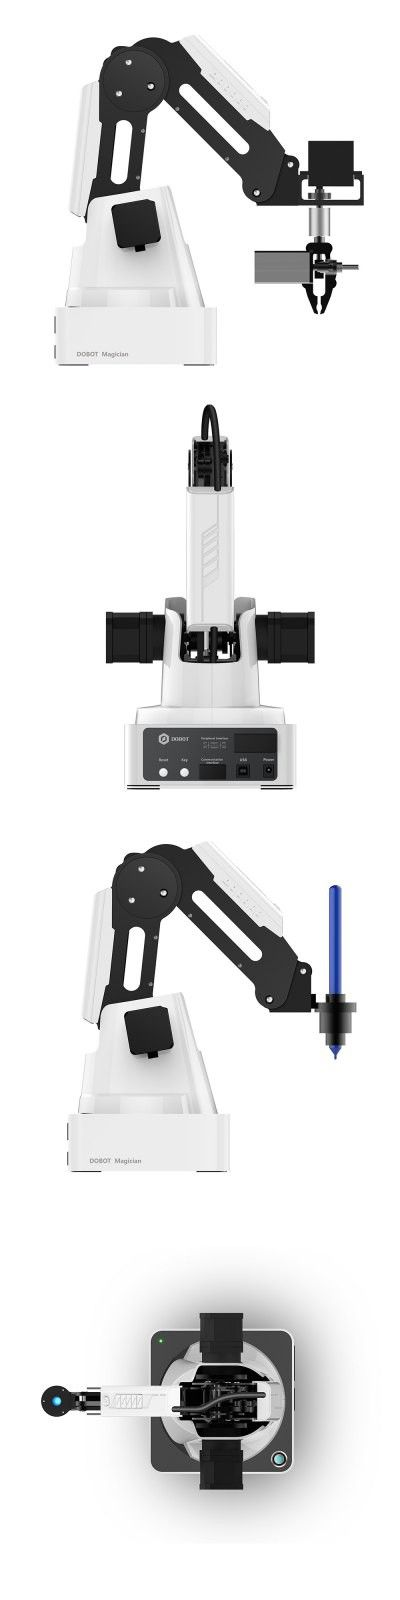 DOBOT Magician Educational Version Advanced Robotic Arm-1159.00